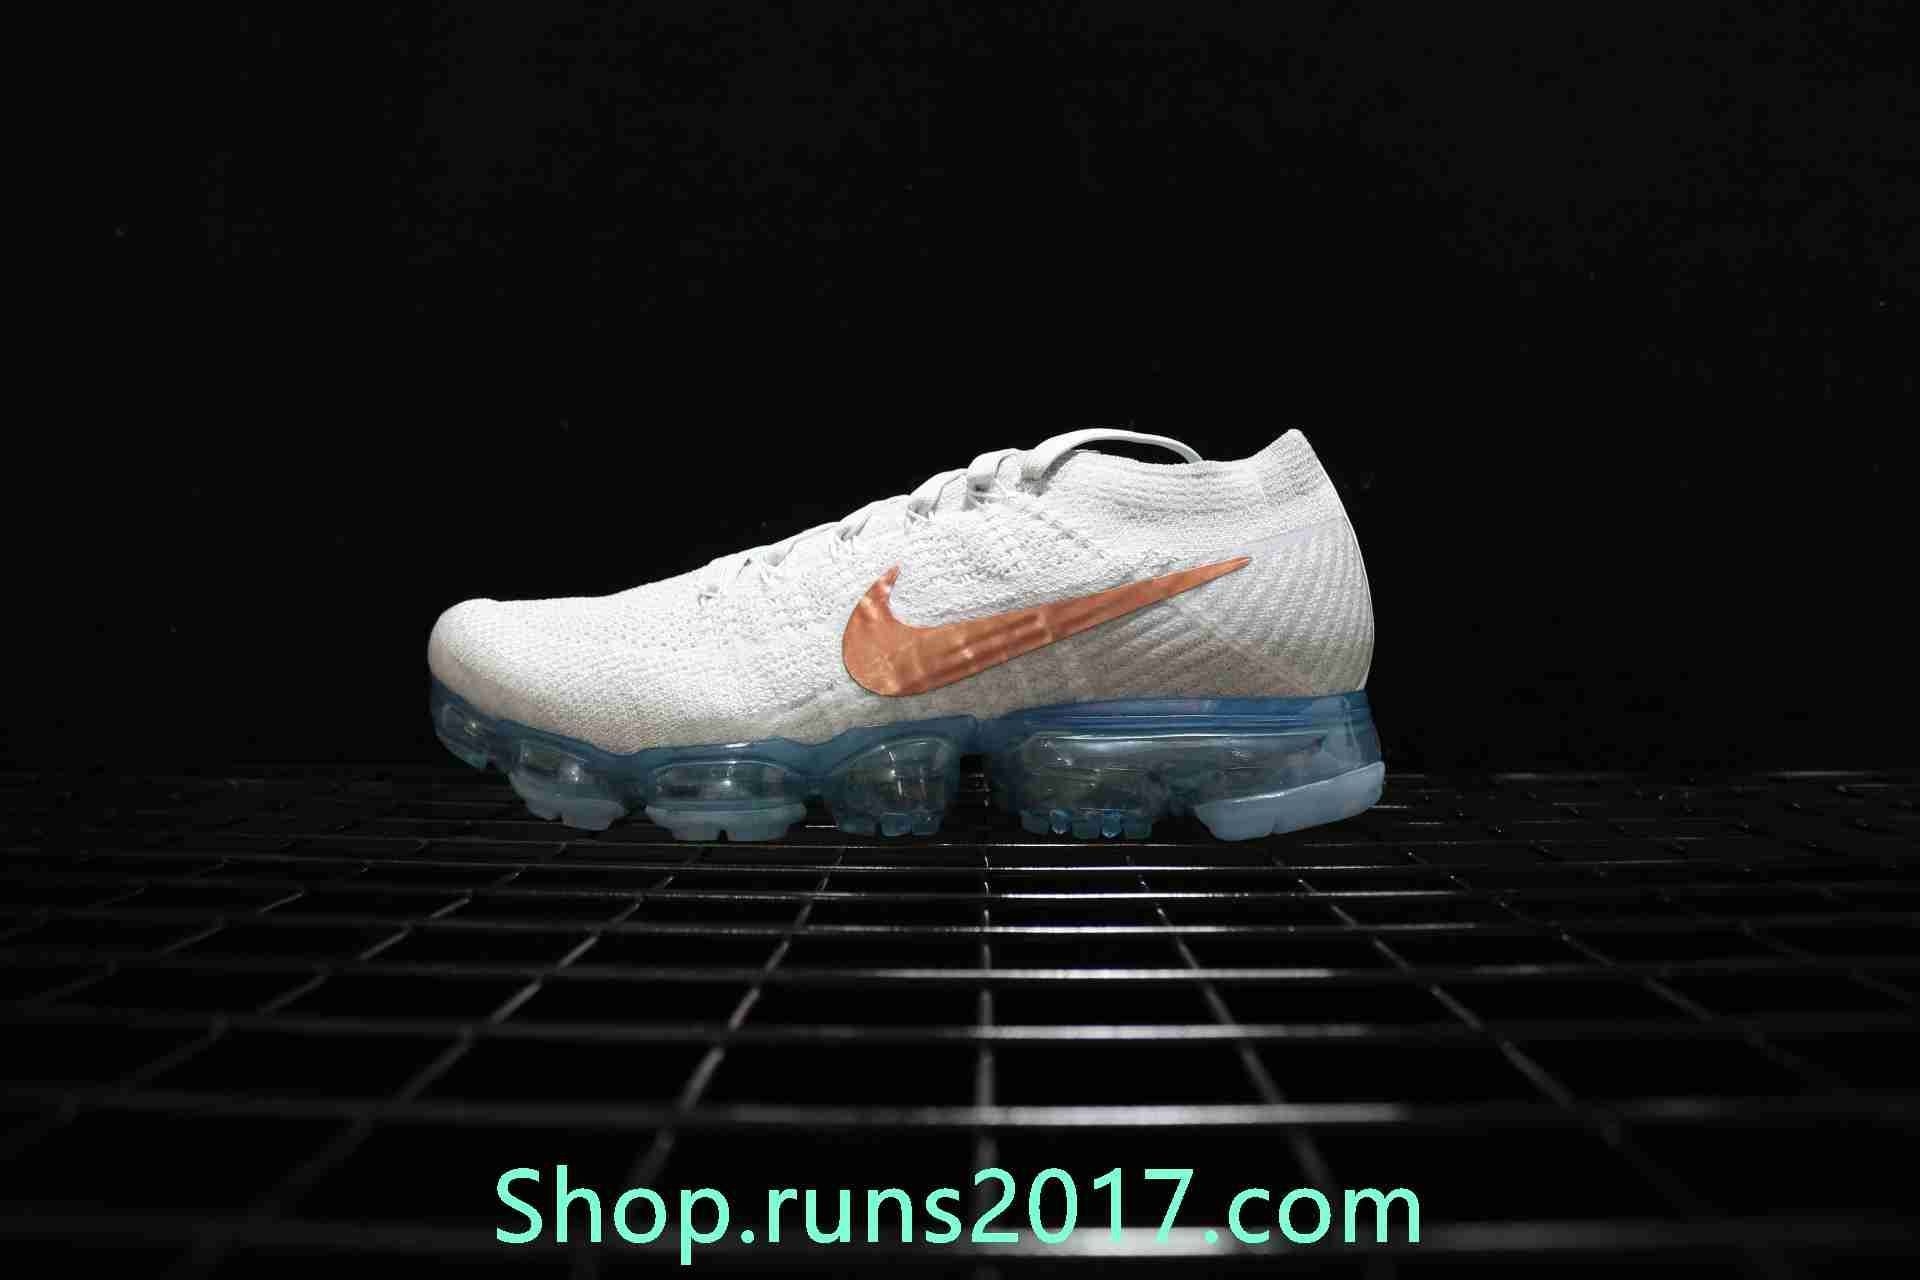 814e6a225729 New Nike Air VaporMax 2018 Flyknit White Gold Tick Women Men ...